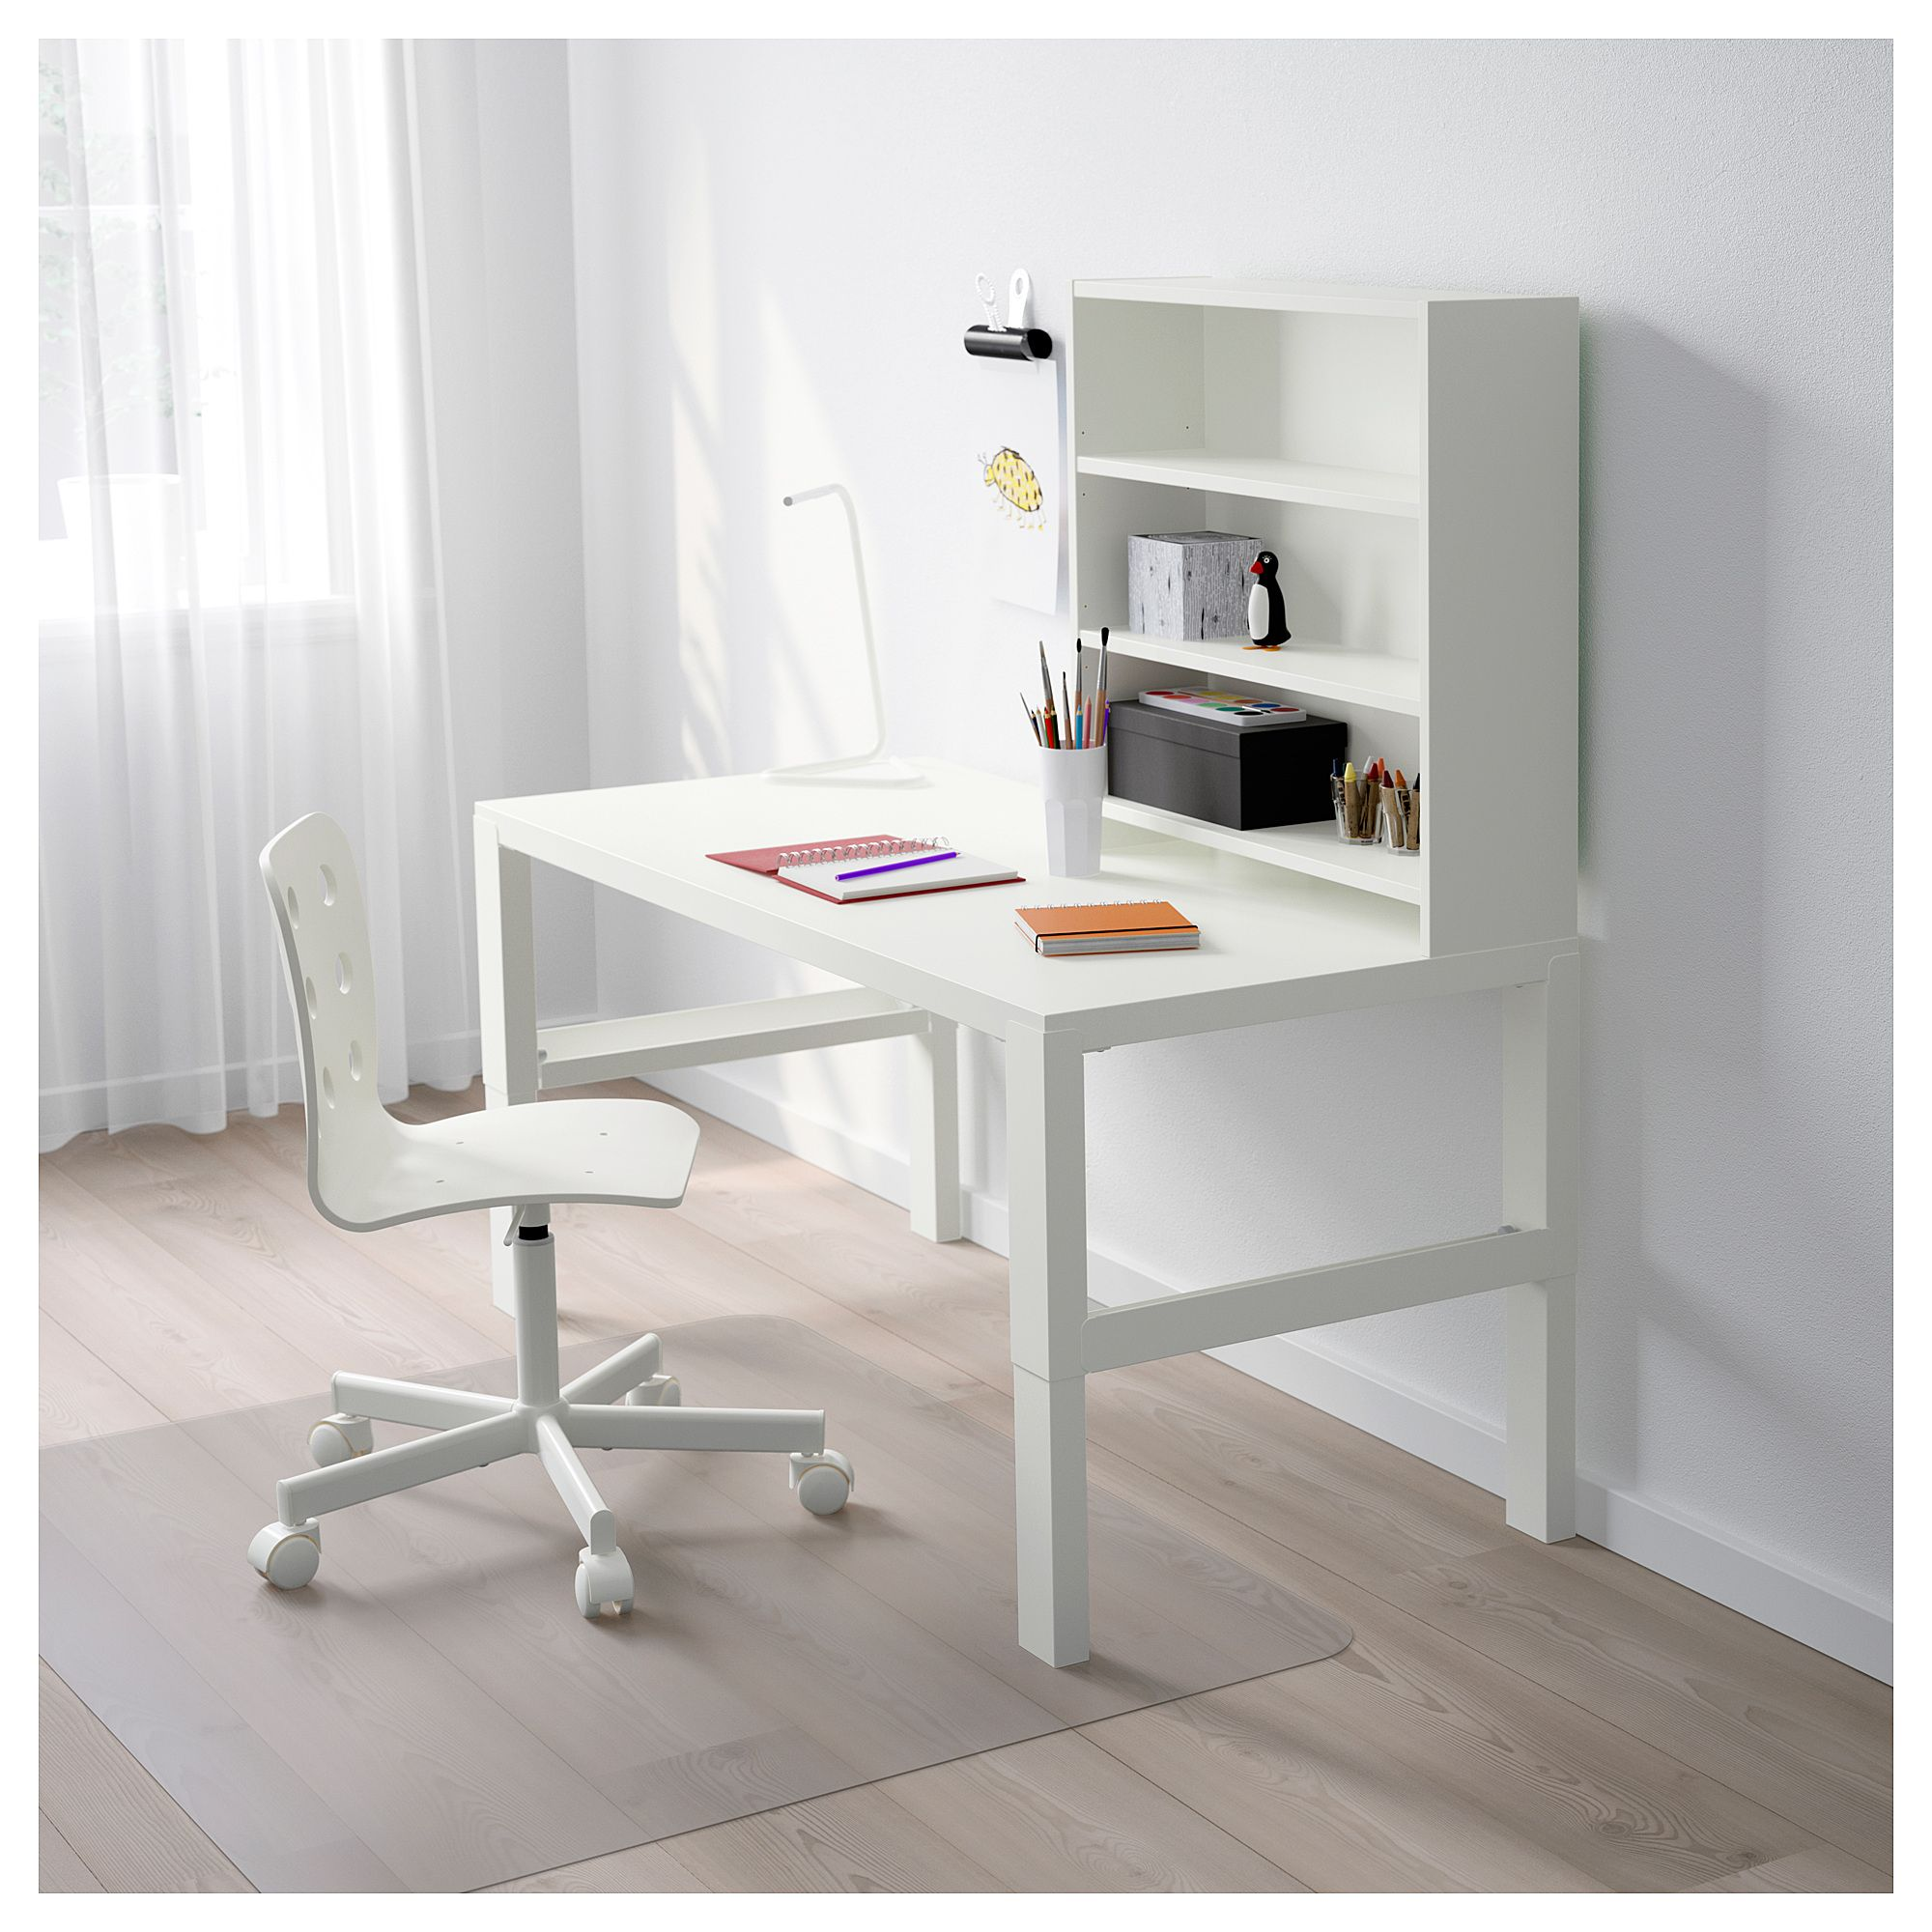 Ikea P 197 Hl Desk With Add On Unit White In 2019 Products Ikea Kids Desk Workspace Desk